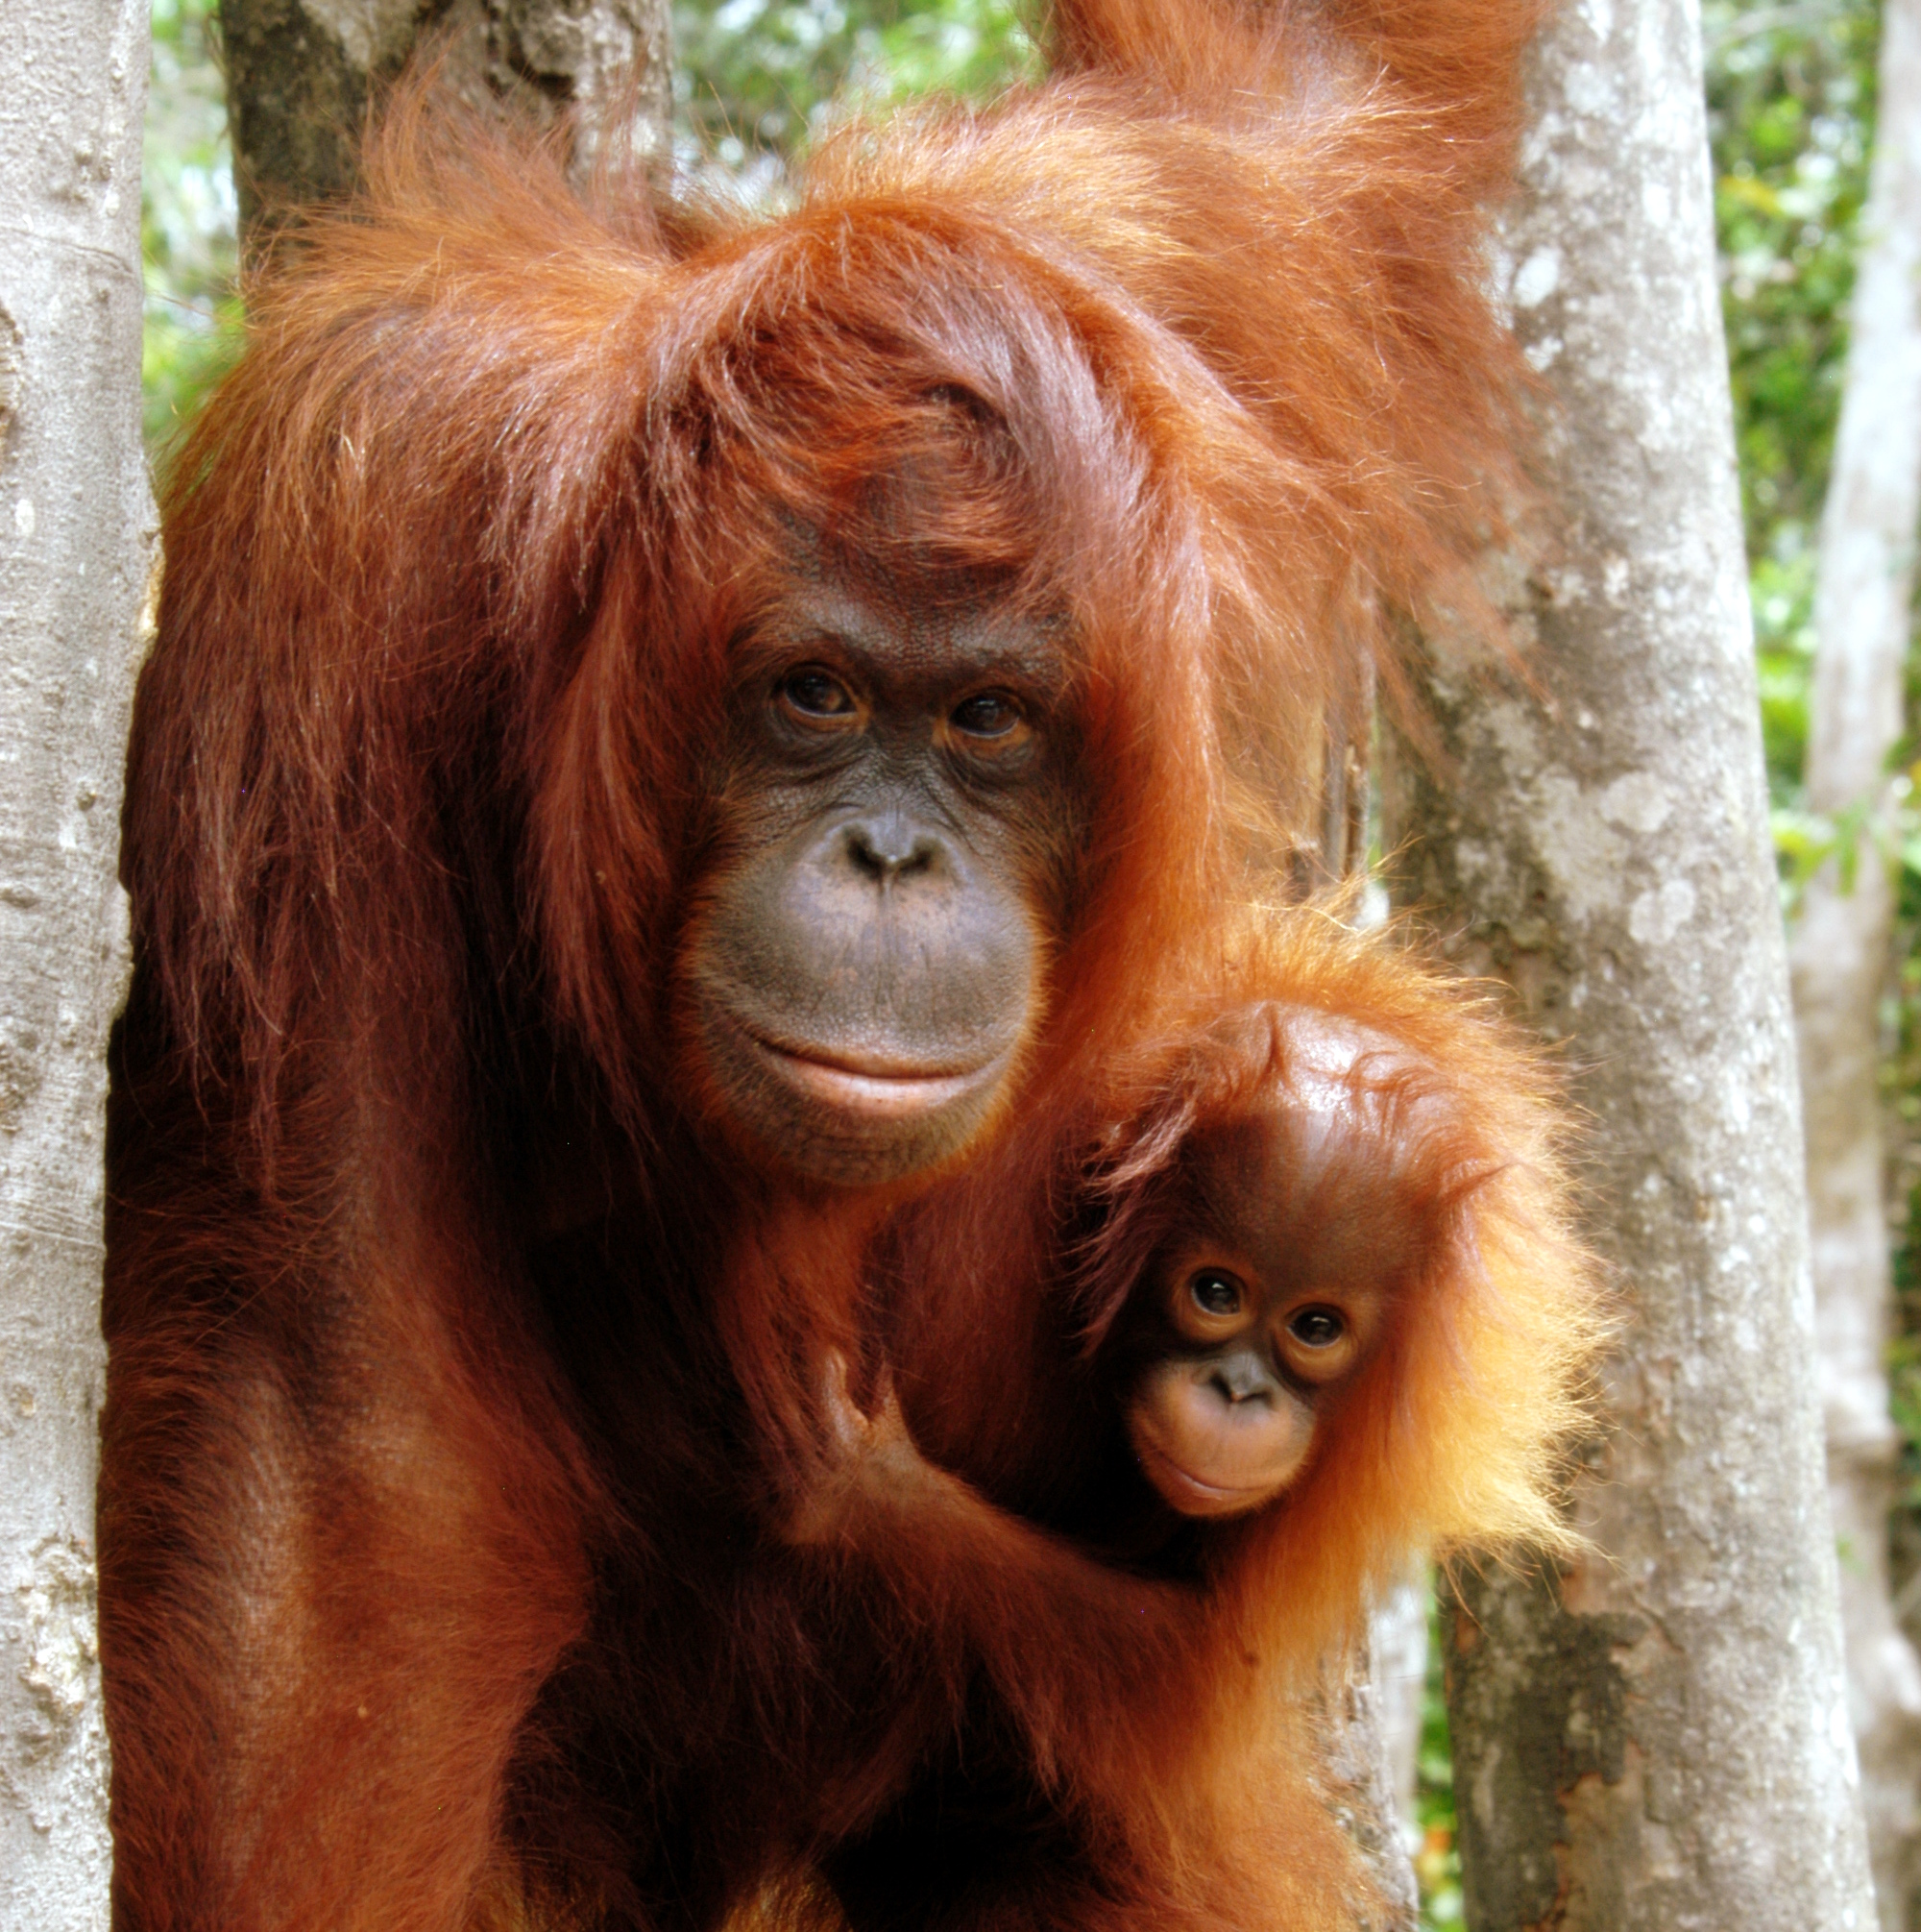 Images of Orangutan | 2000x2011